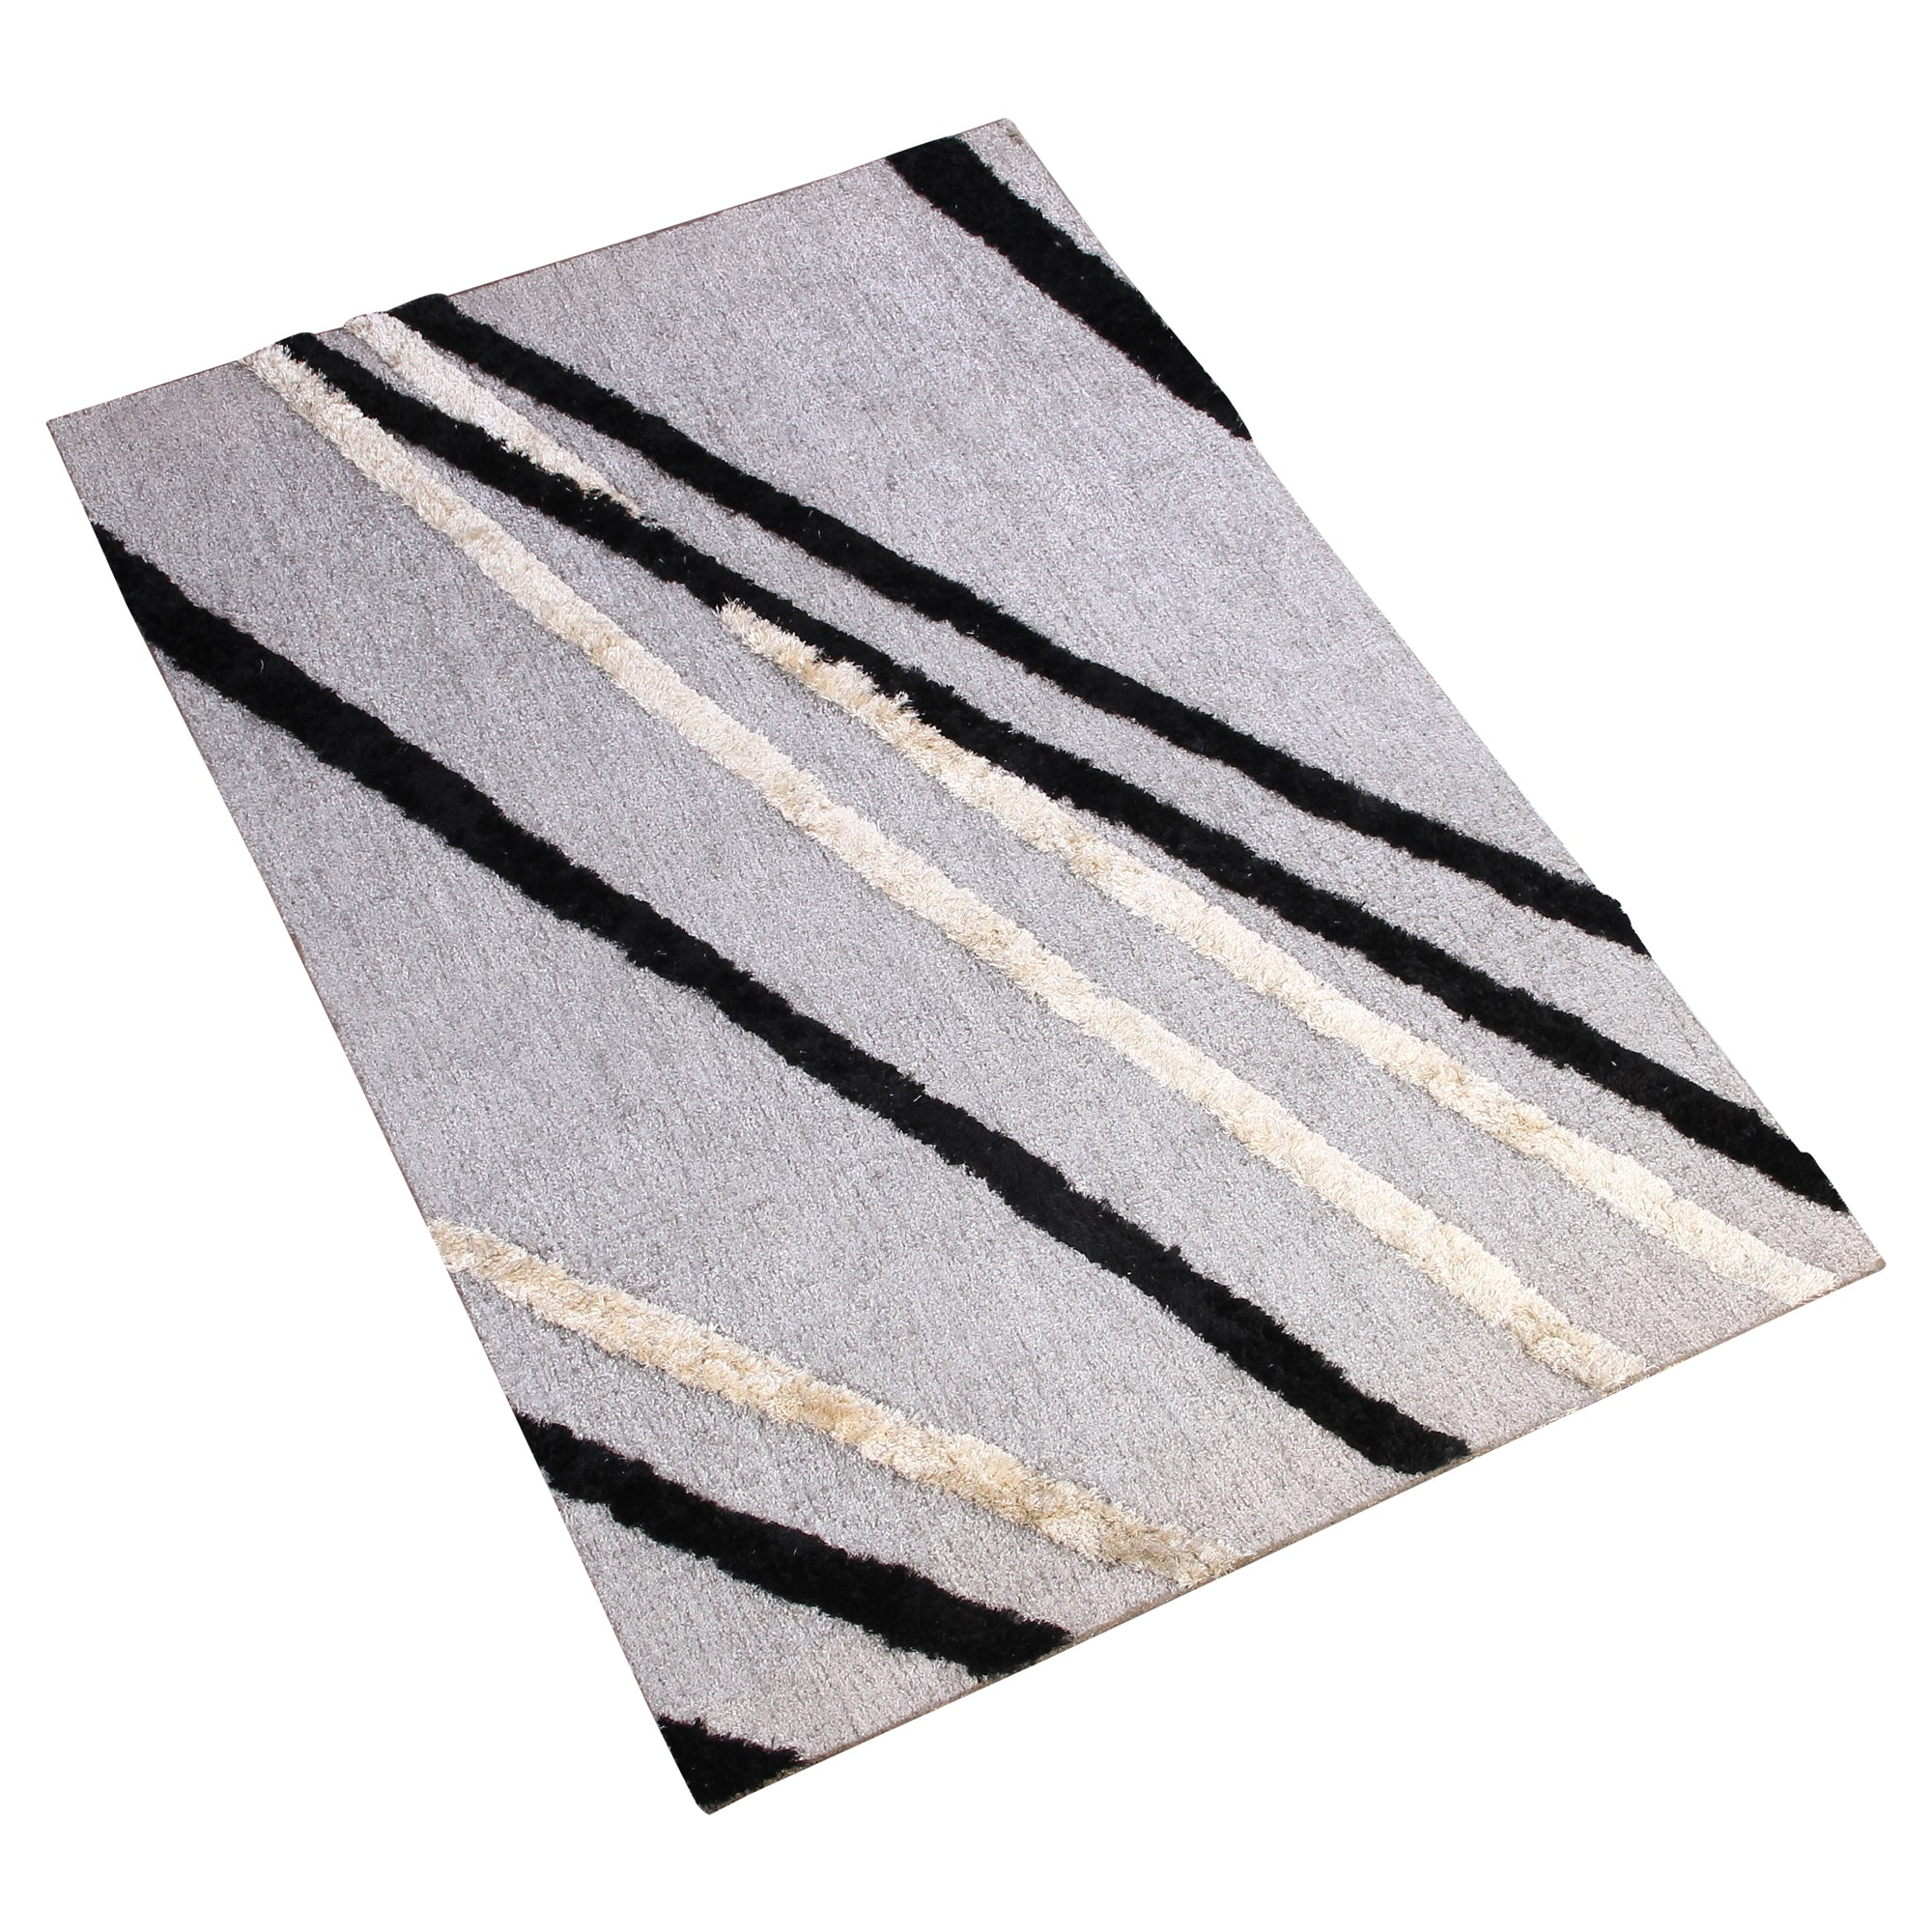 GREY WHITE BLACK ABSTRACT HAND TUFTED RUG